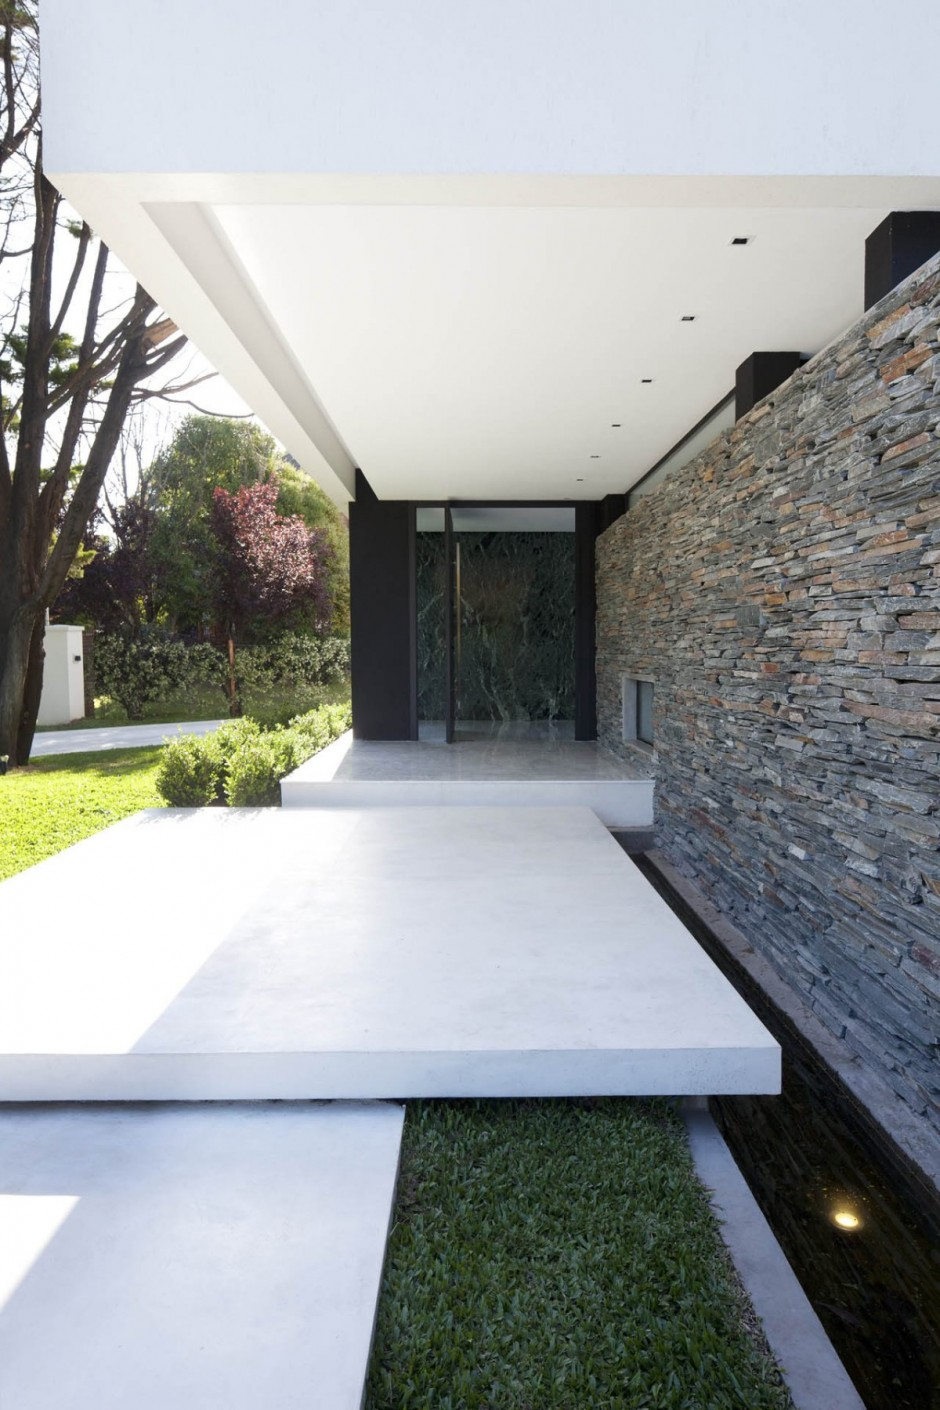 House design entrance - Like Architecture Interior Design Follow Us